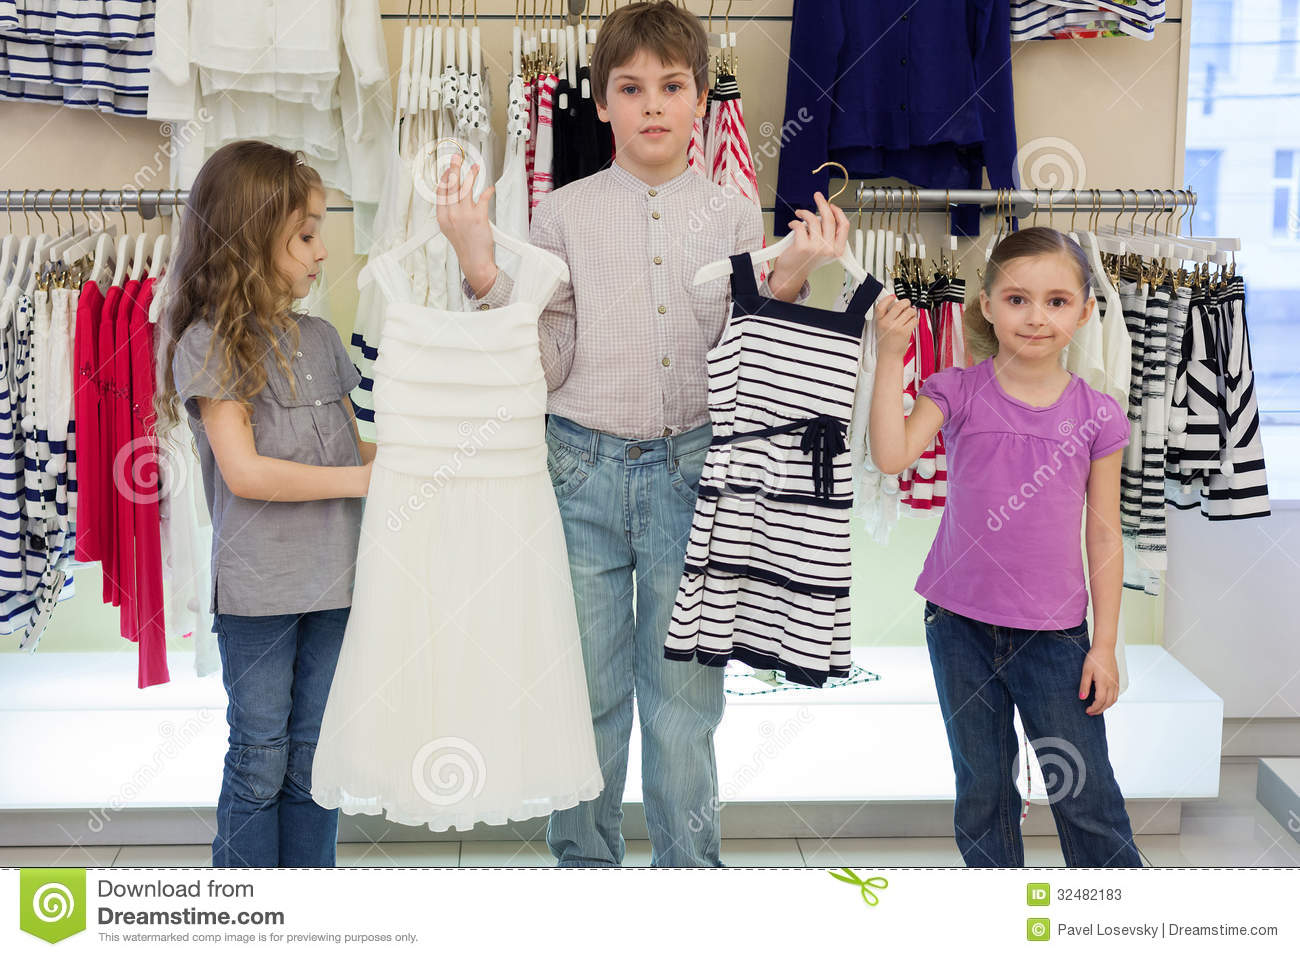 The Boy Helps Cute Girls To Choose Dress In Shop Stock Photos ...